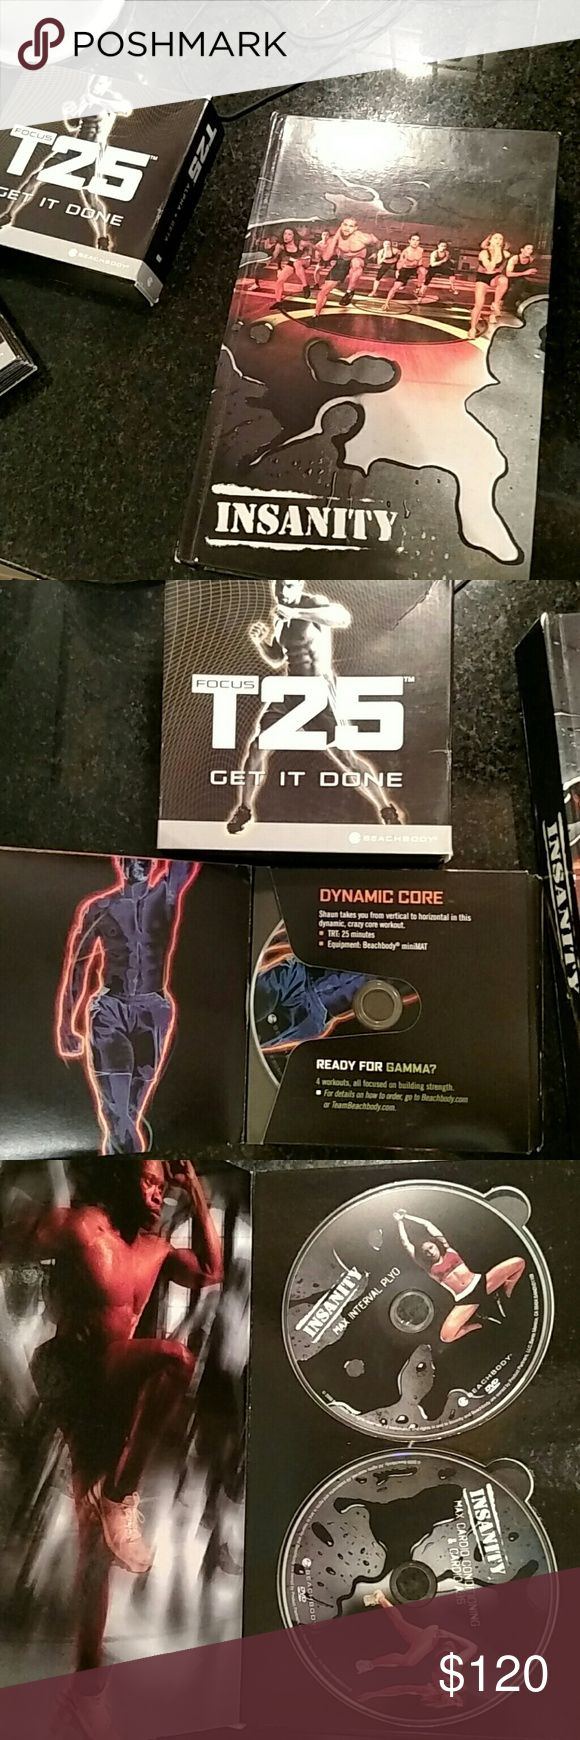 Insanity + T25 Beta + Elite Nutrition by Shaun T THE HARDEST WORKOUT PROGRAM EVER PUT ON DVD. Are you ready for the ultimate challenge? You can transform your body in 60 days with this total-body conditioning program. And you won't need equipment or weights—just the desire to dig deep and push past your limits.  In INSANITY®, Shaun T uses a method called Max Interval Training. You'll do cardio and plyometric drills with intervals of strength, power, resistance, and core training. **BOTH…